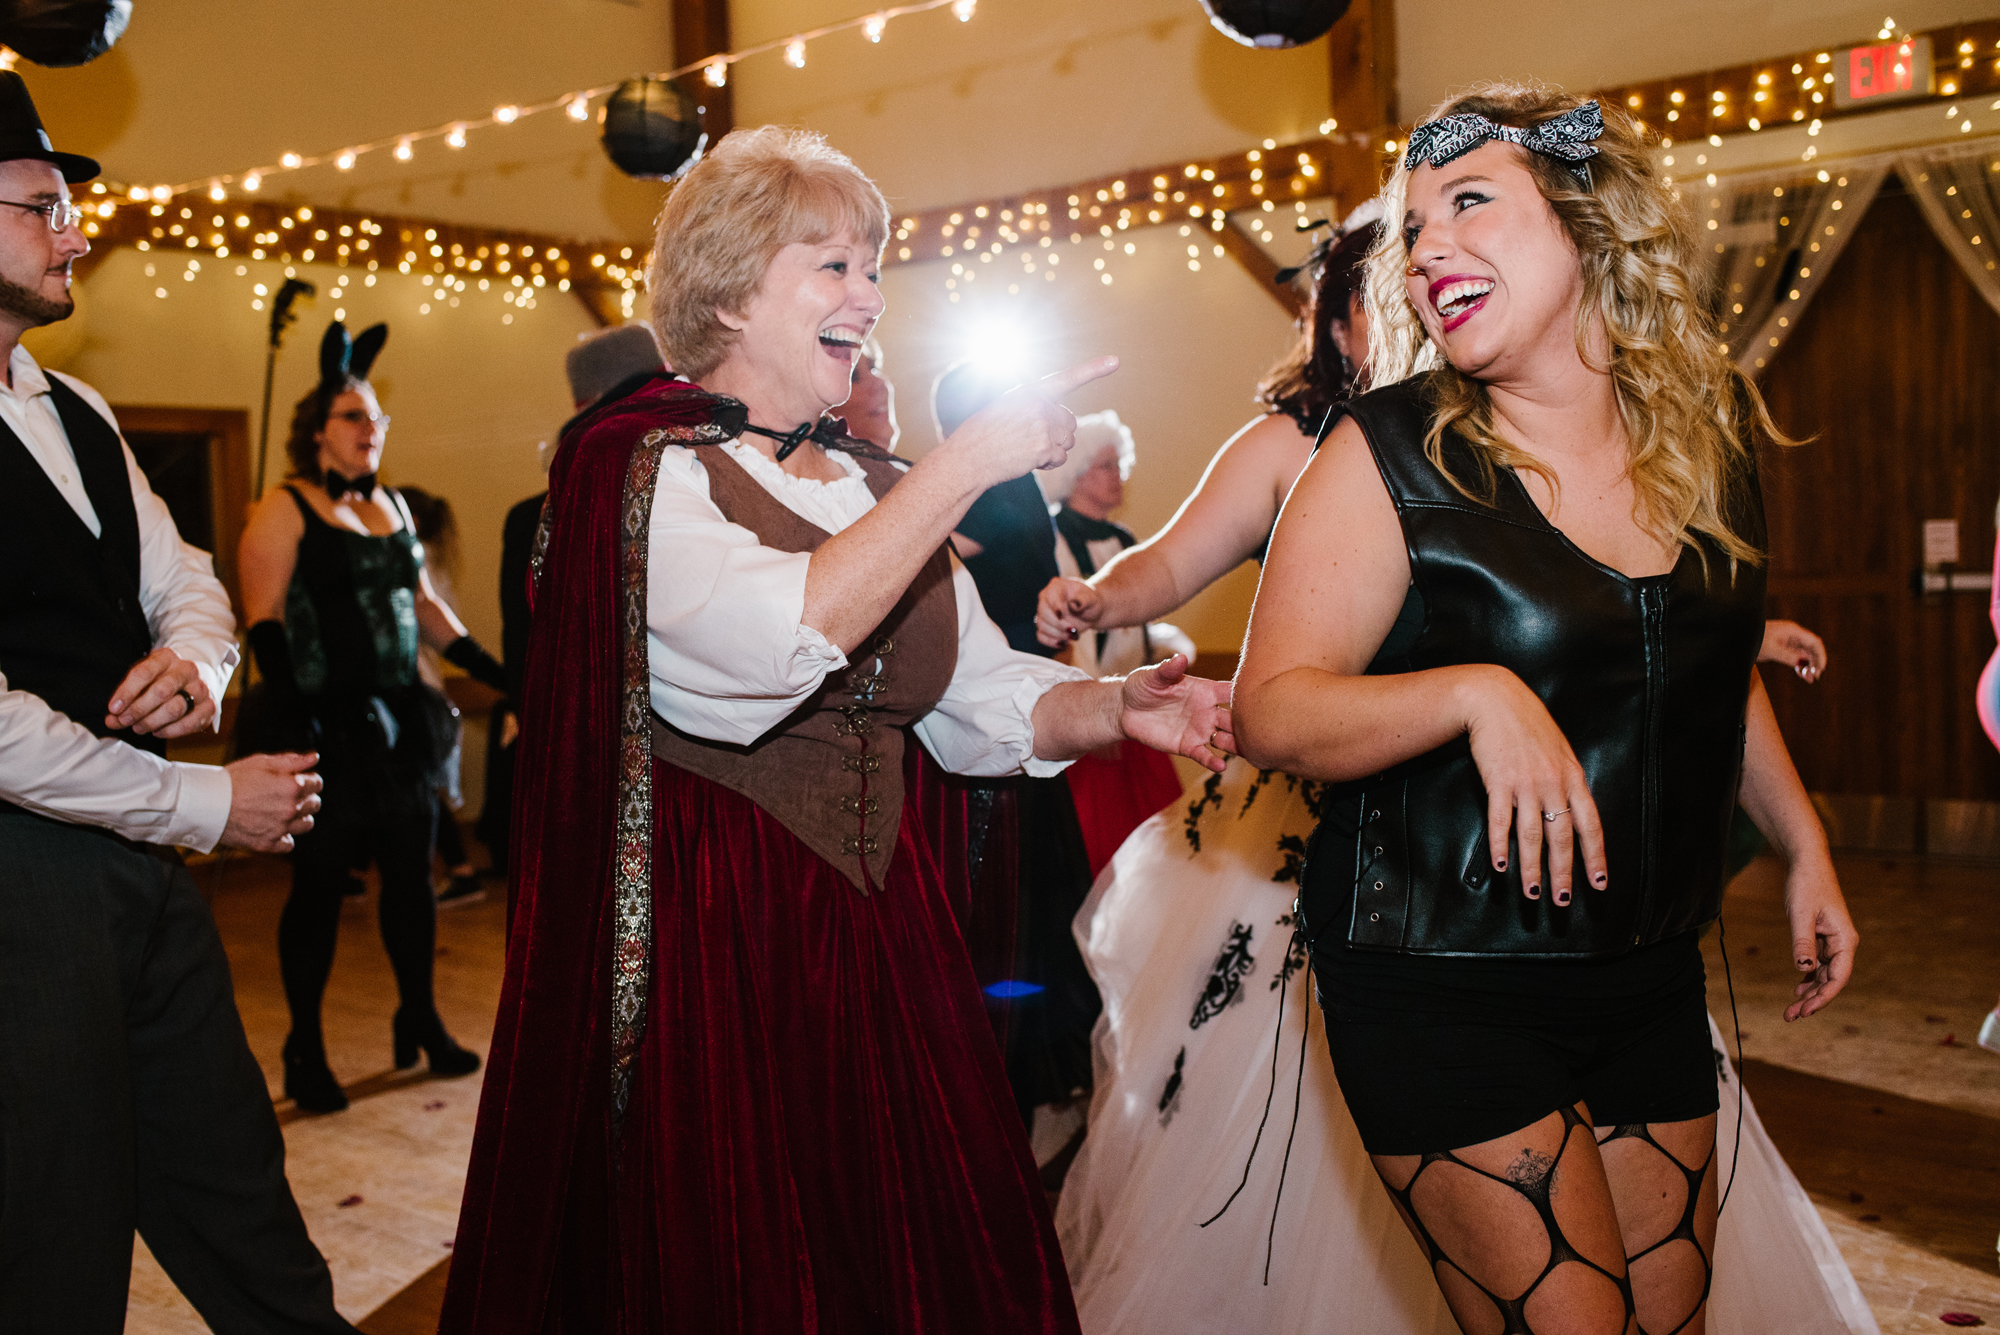 ann-arbor-michigan-halloween-themed-wedding-dancing-photos (7).jpg